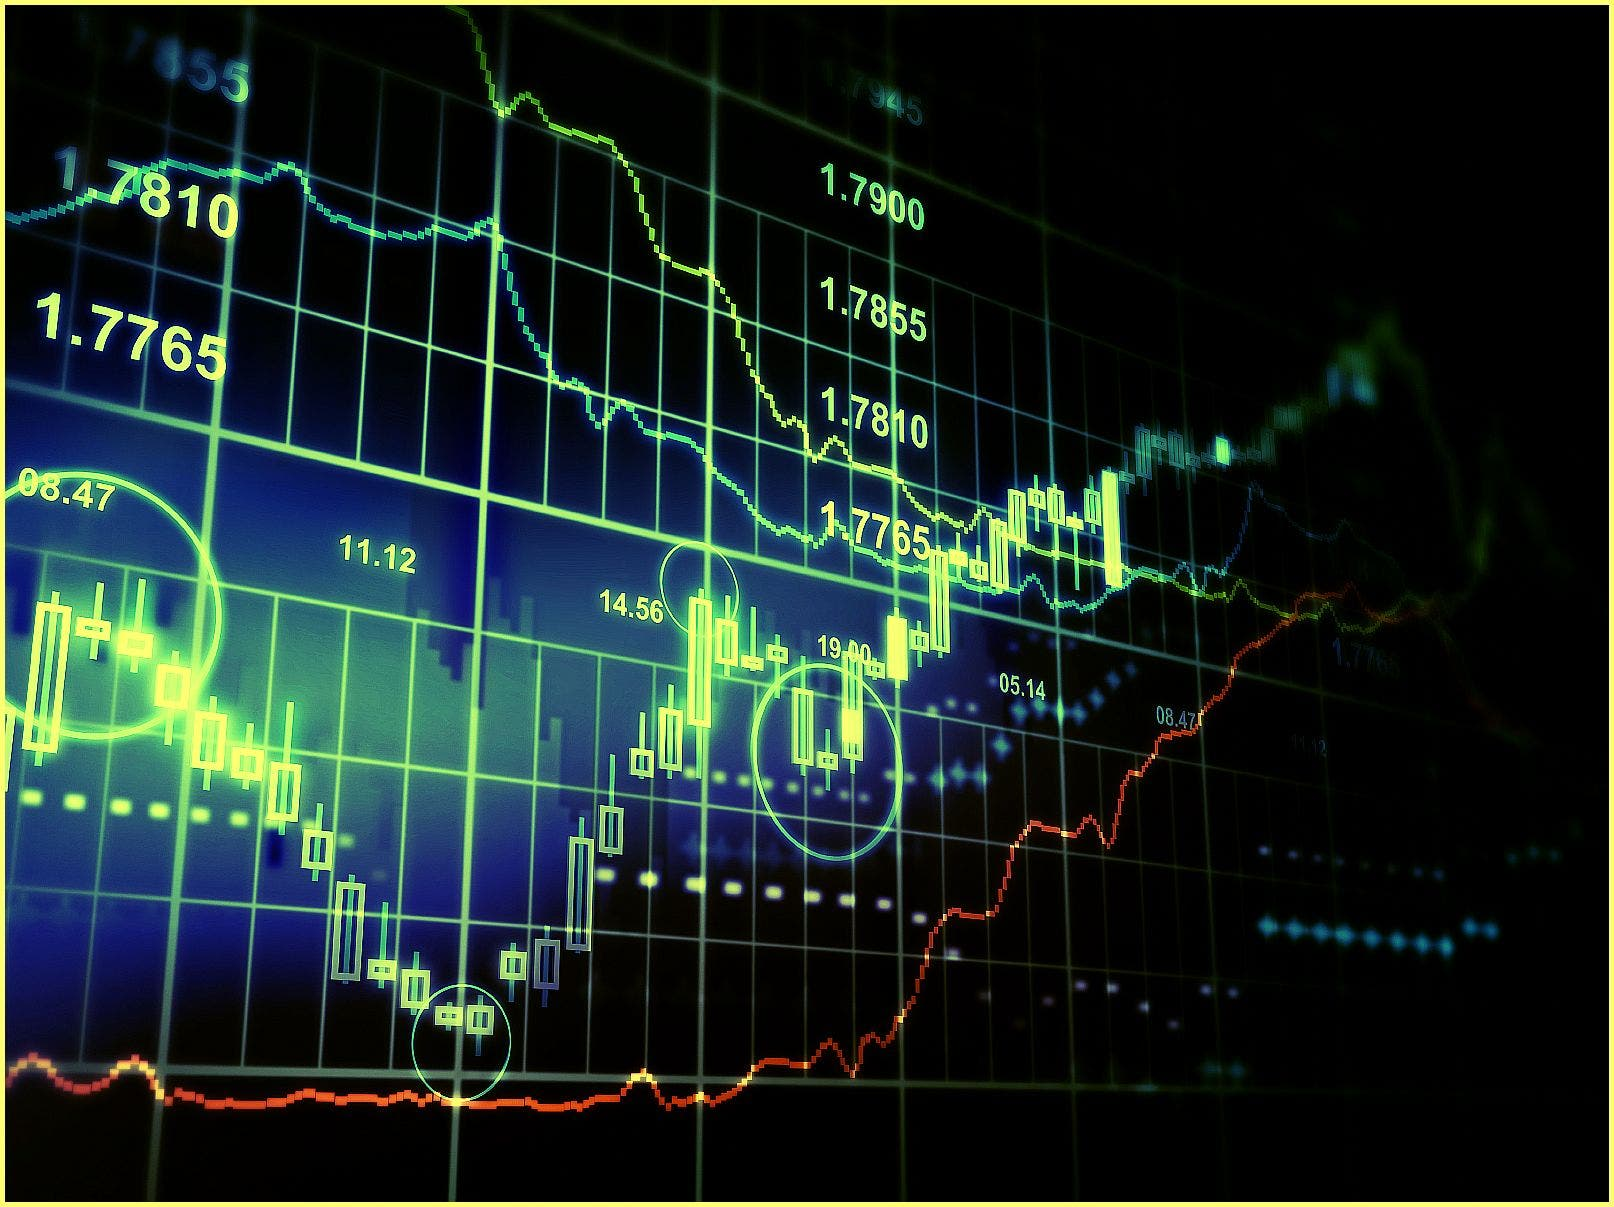 Returns were mixed among the different strategic indices